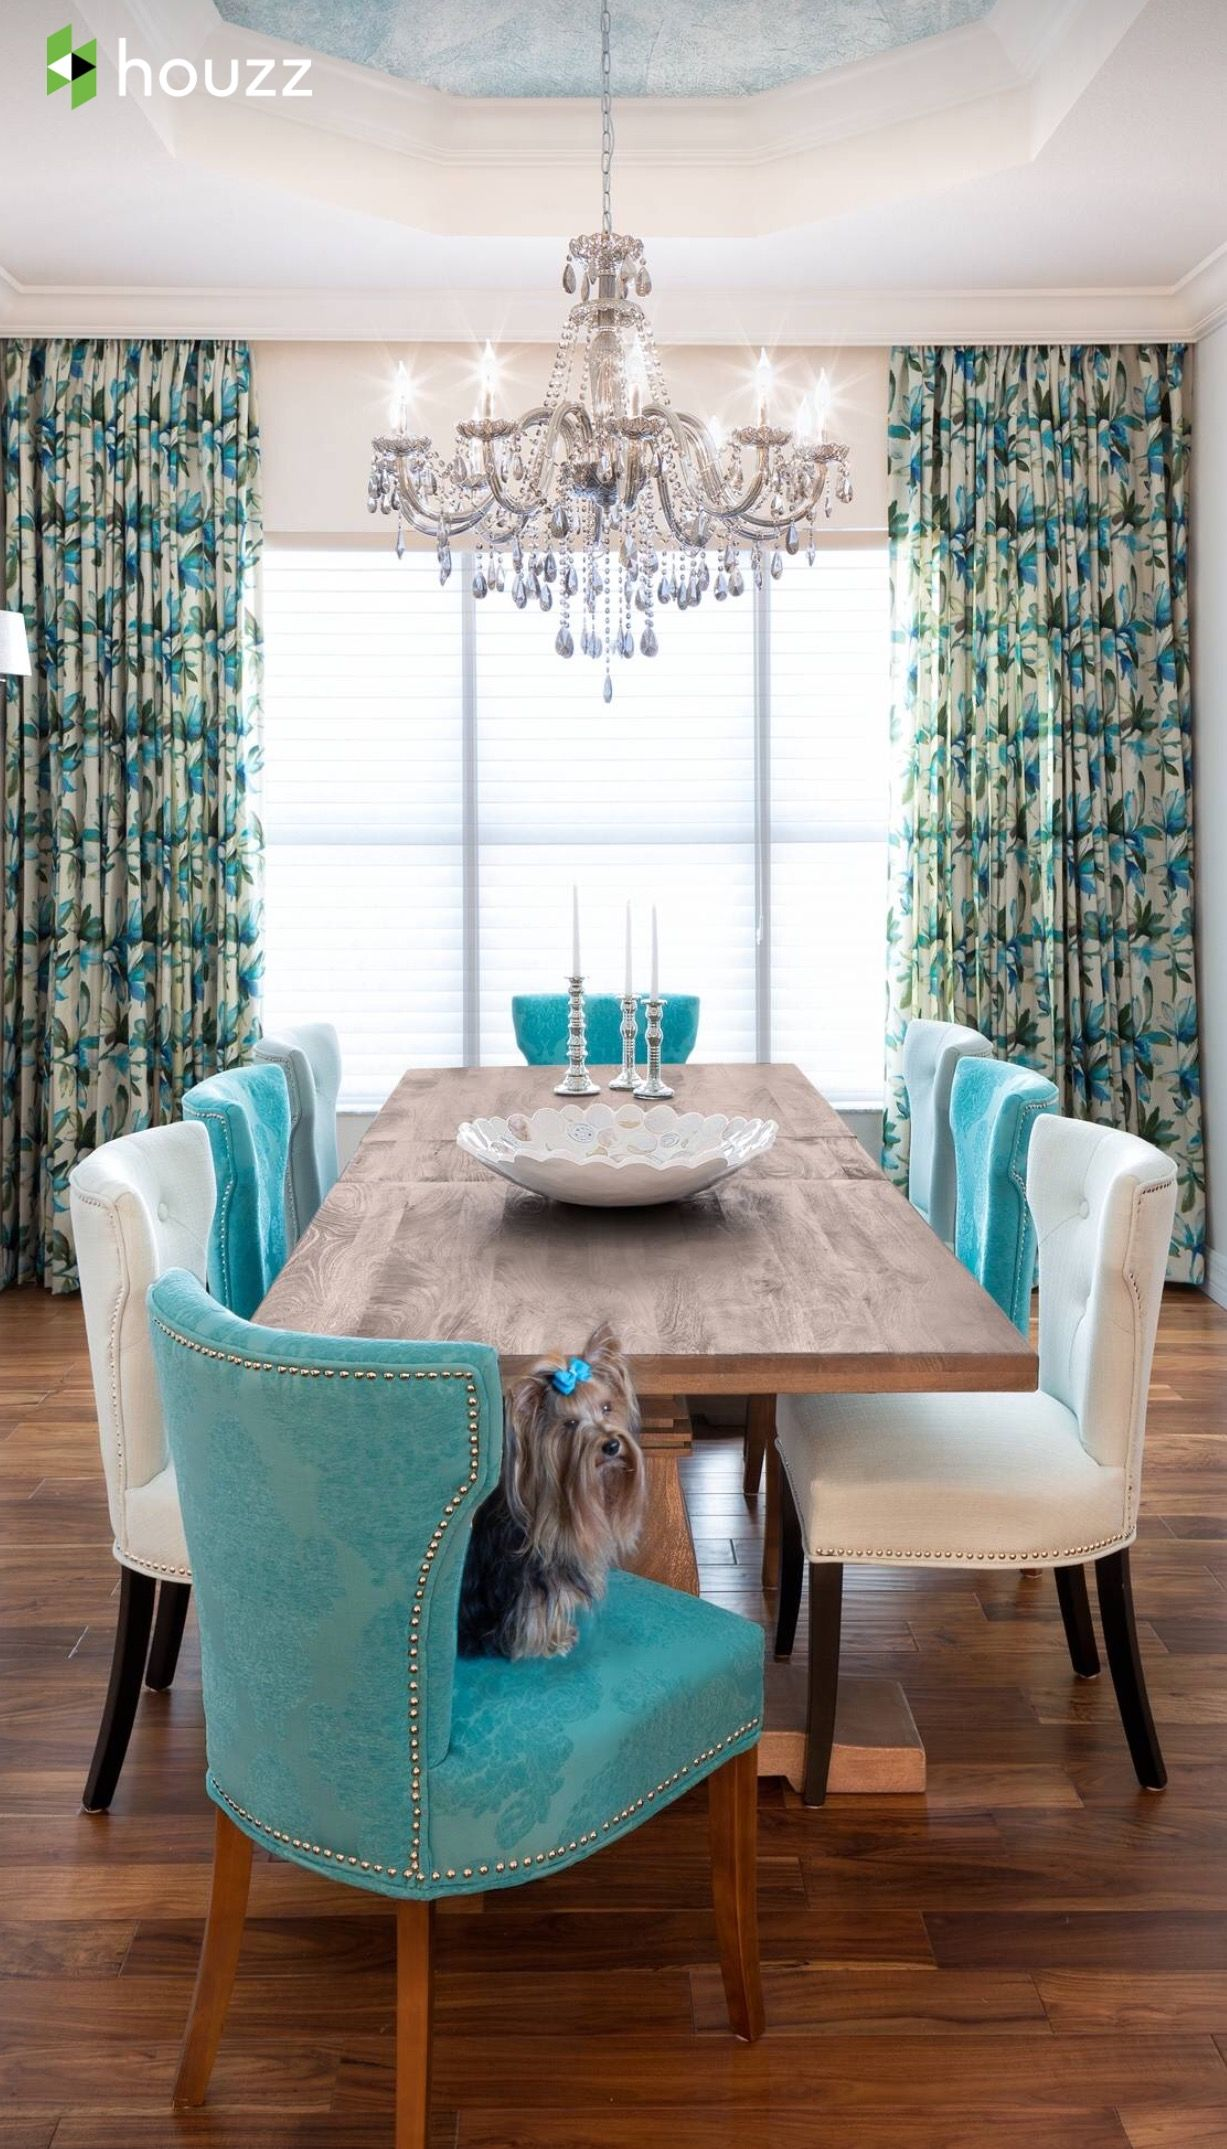 Pinnene Flournoy On Tiffany Blue's Sea Foam Teal's Fair Brown And Turquoise Living Room Inspiration